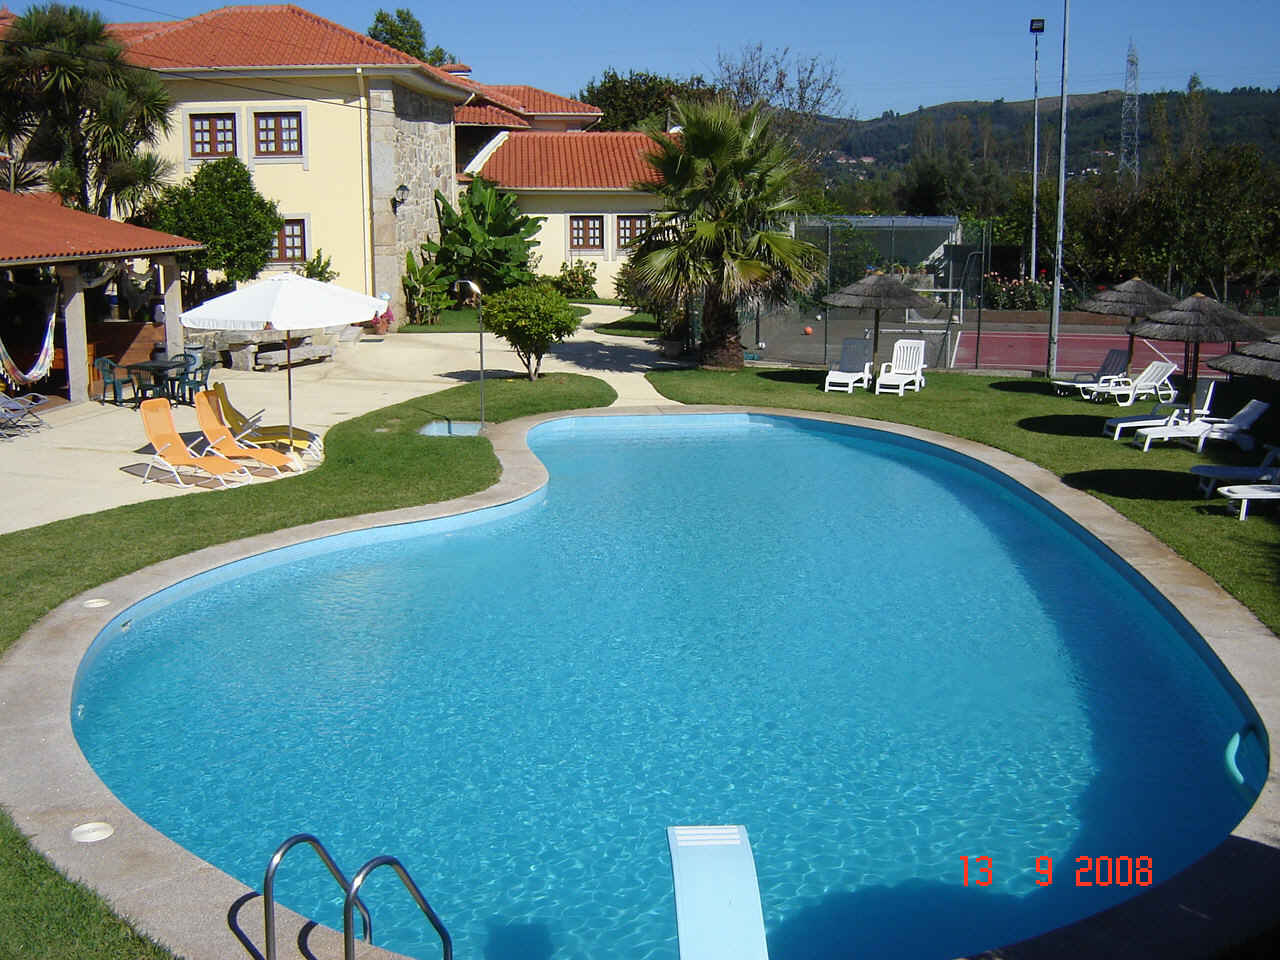 Alojamento - Alojamento Self Catering - Quinta Dom Jose, bed and breakfast manor house and HOLIDAYS APARTMENTS - ID 7091